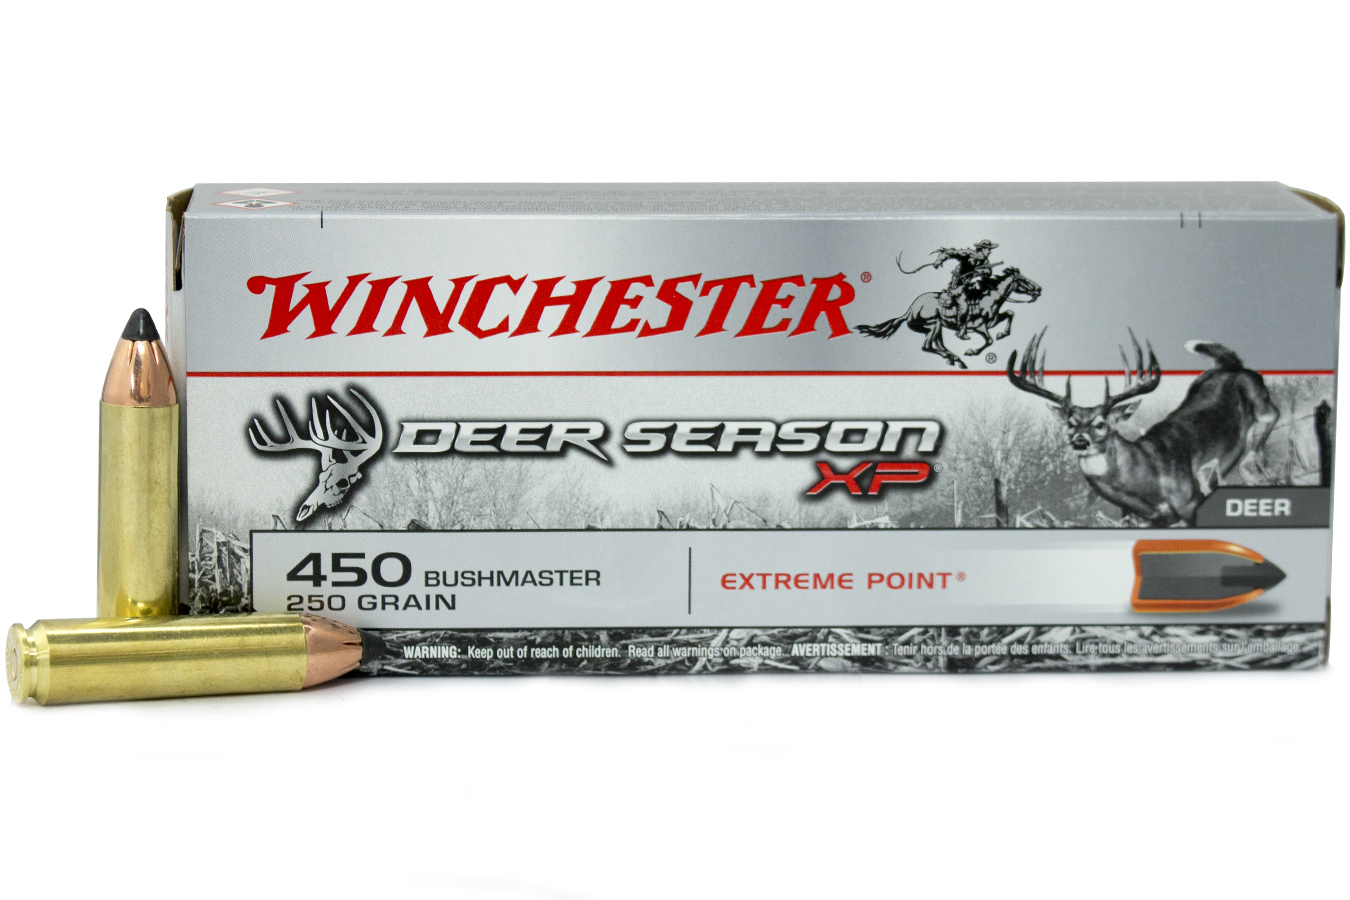 450 BUSHMASTER 250 GR DEER SEASON XP